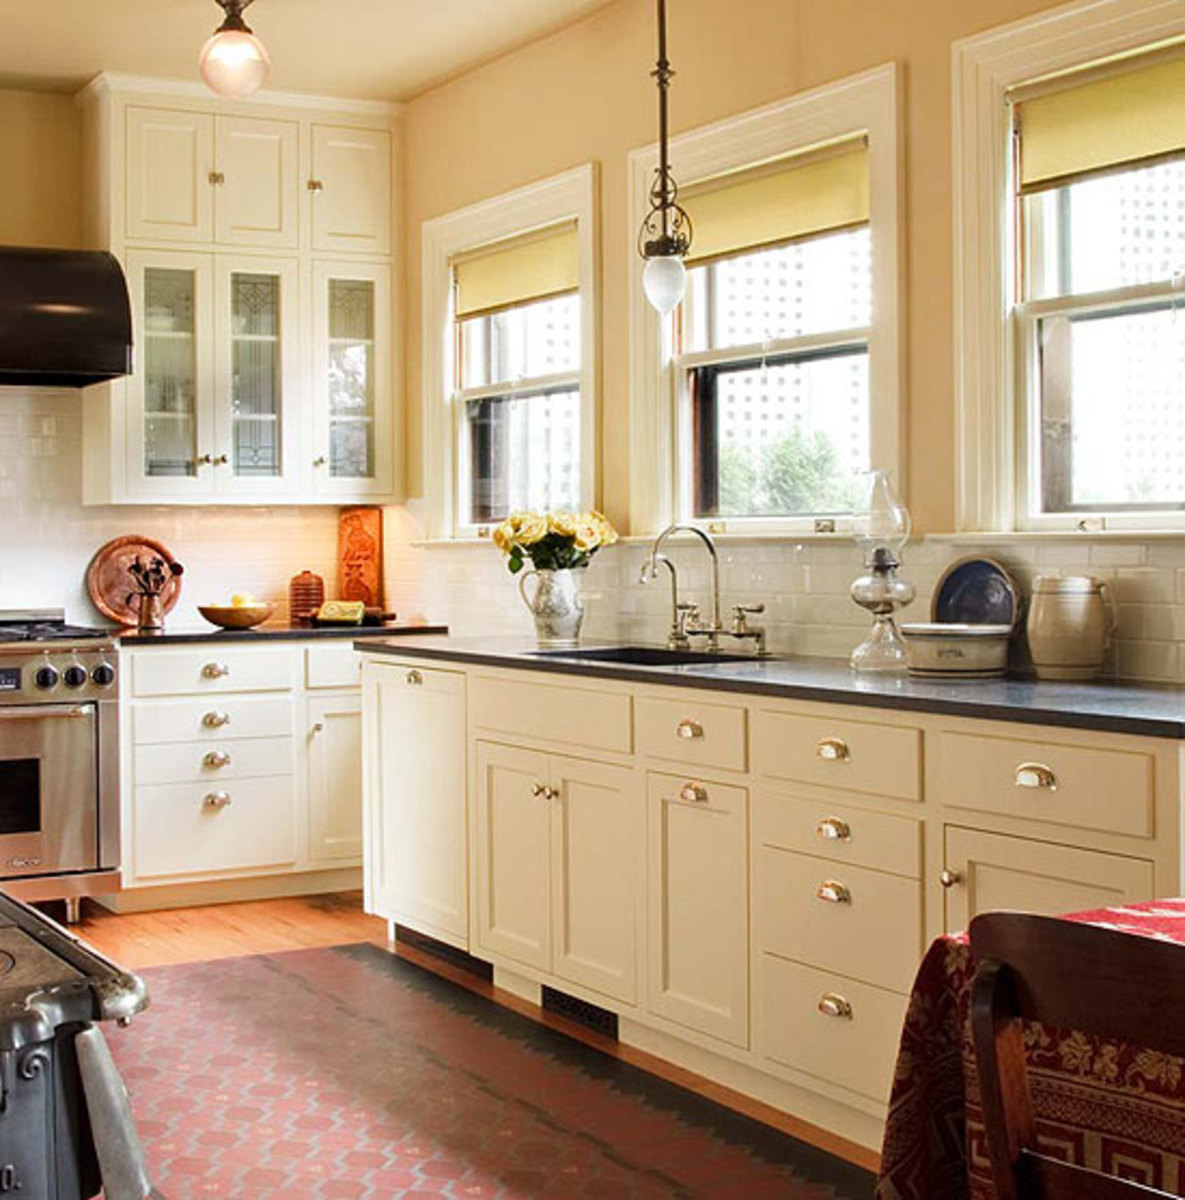 Kitchen Sinks & Countertops: Go Trendy or Timeless? - Arts ...